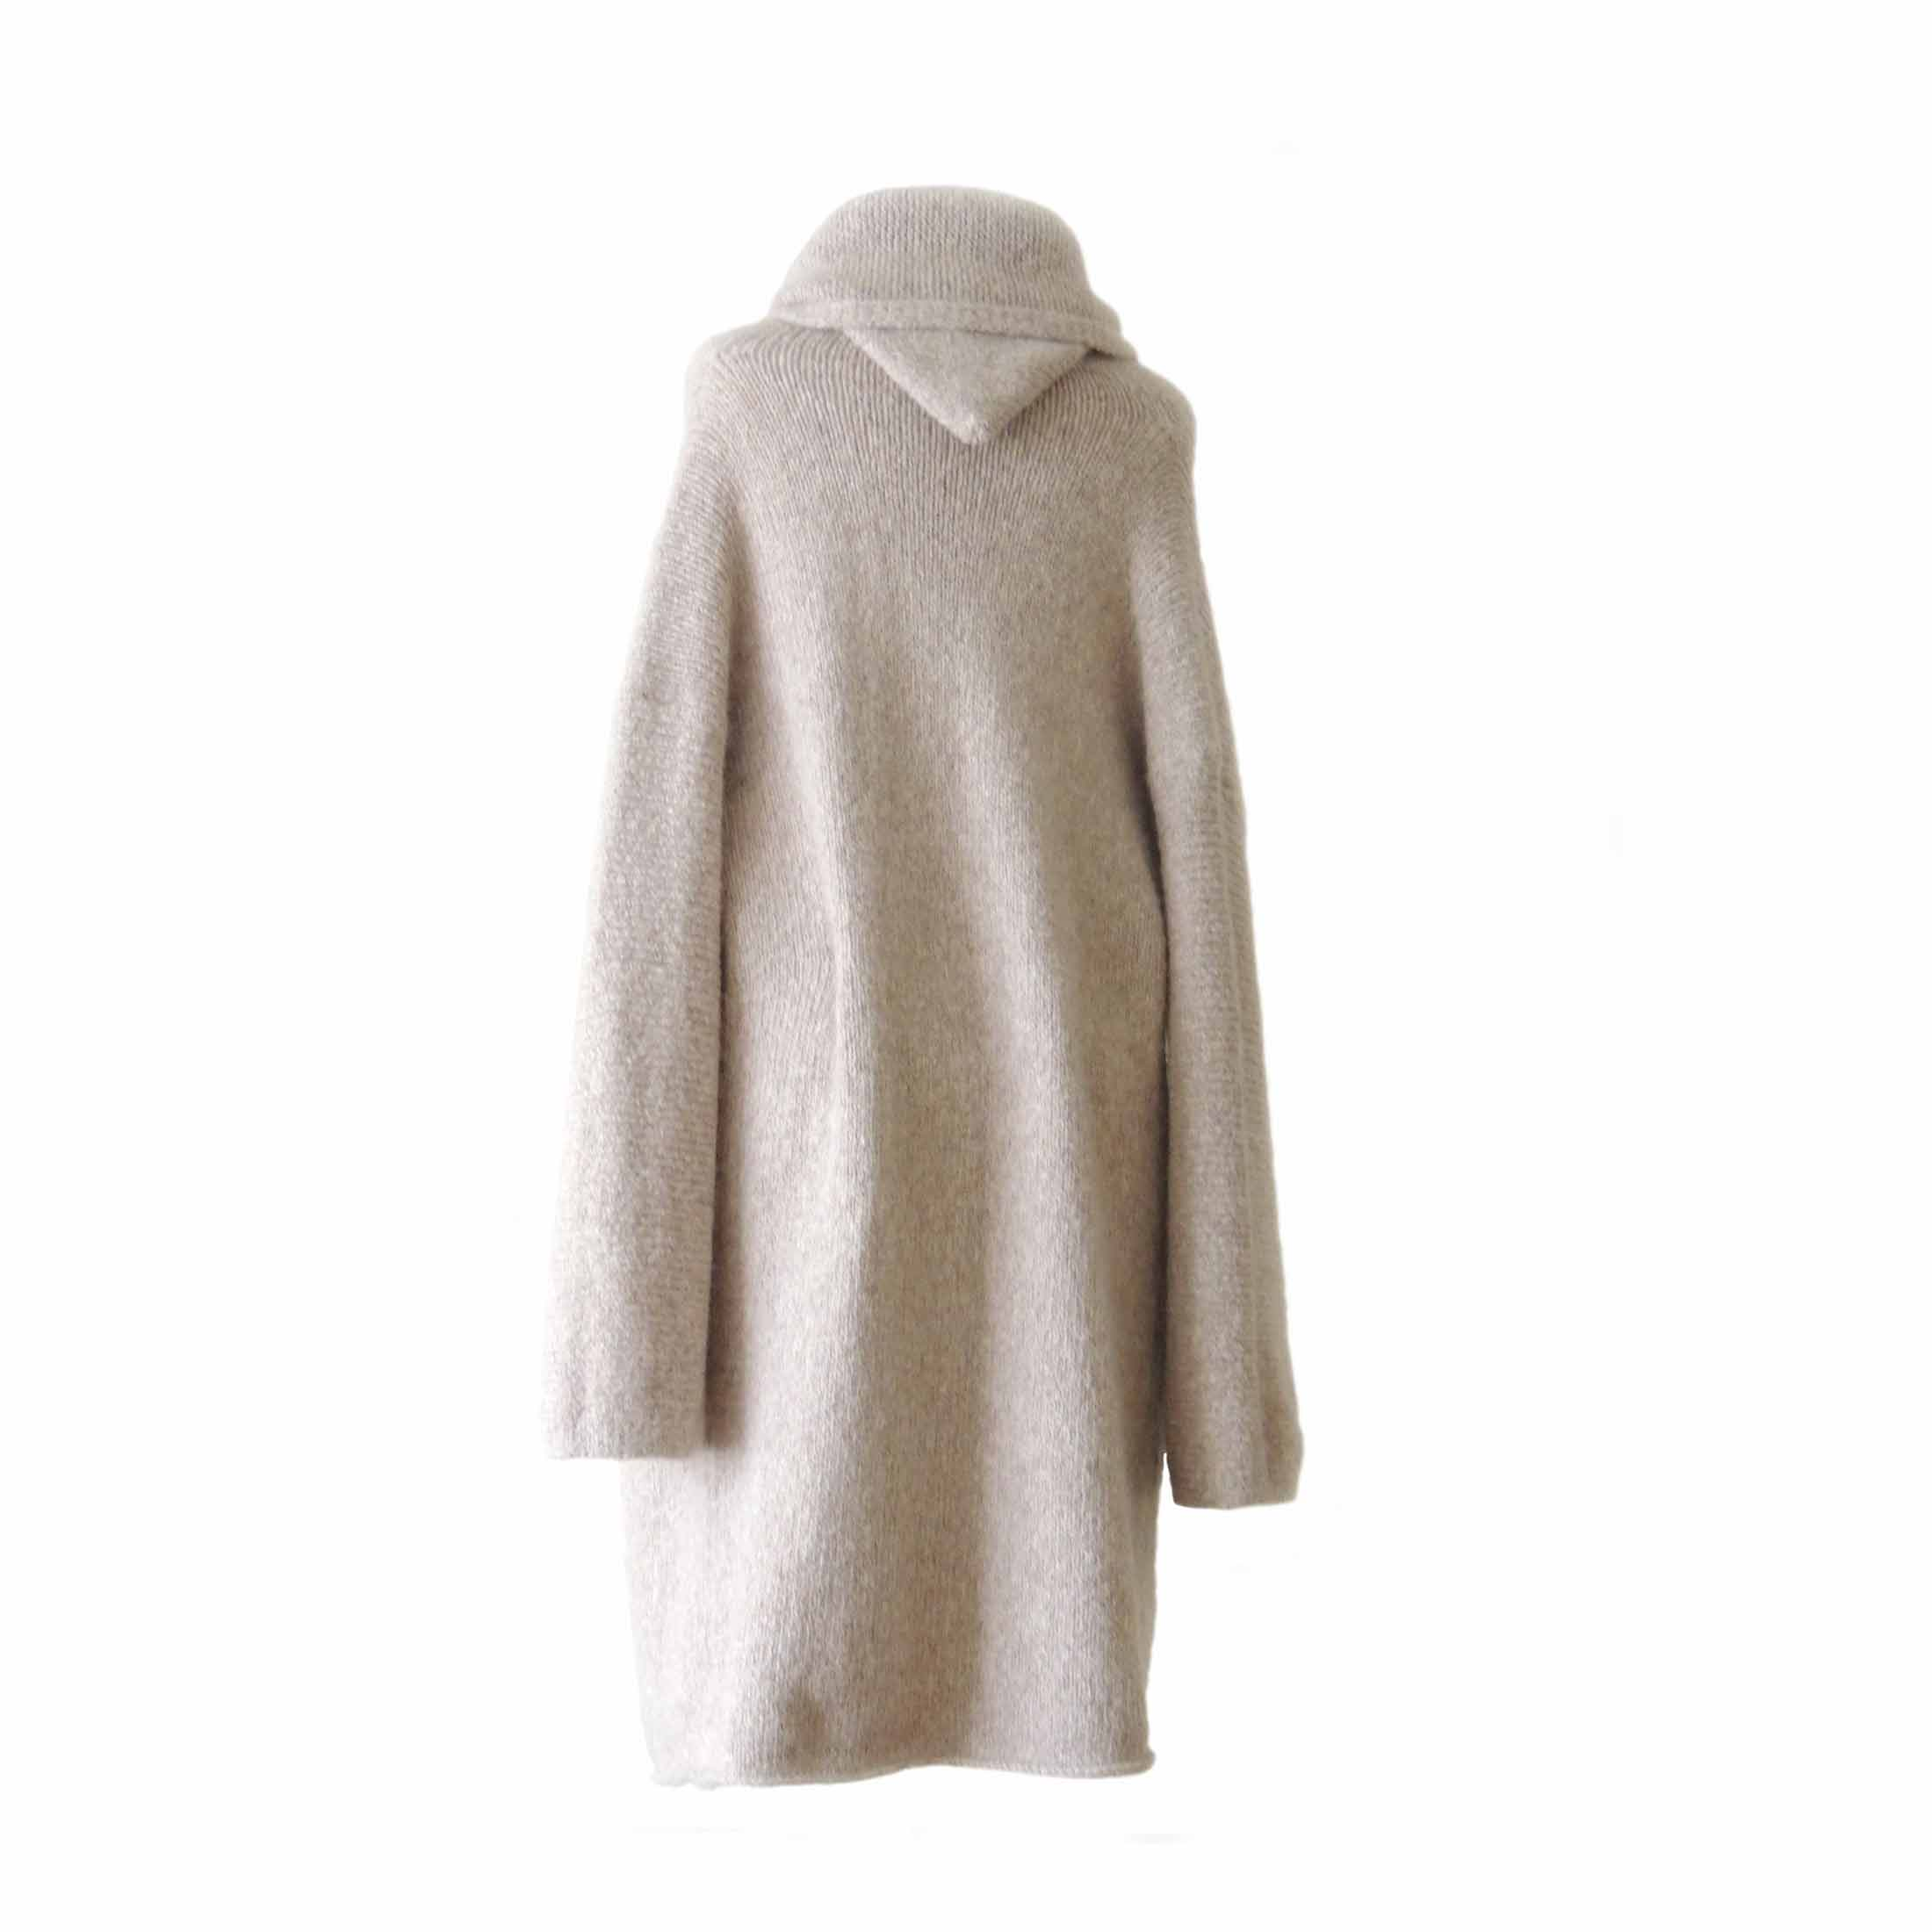 Wholesale: Capote coat, casual oversized cardigan